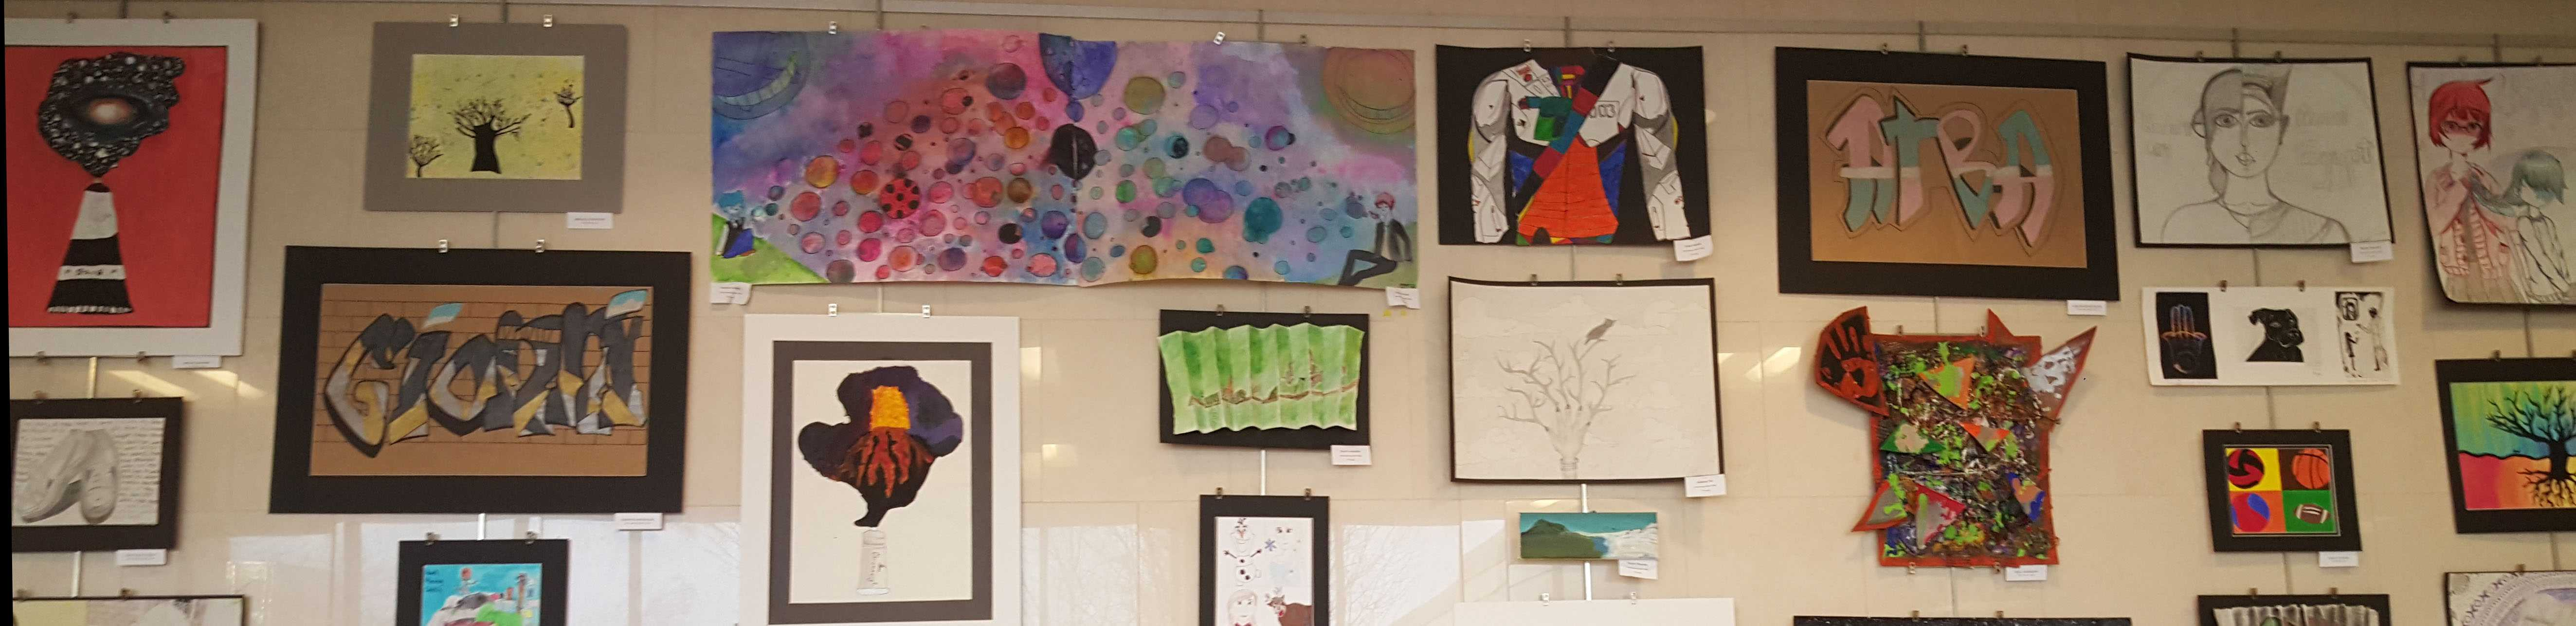 Junior high art show proves artistic futures